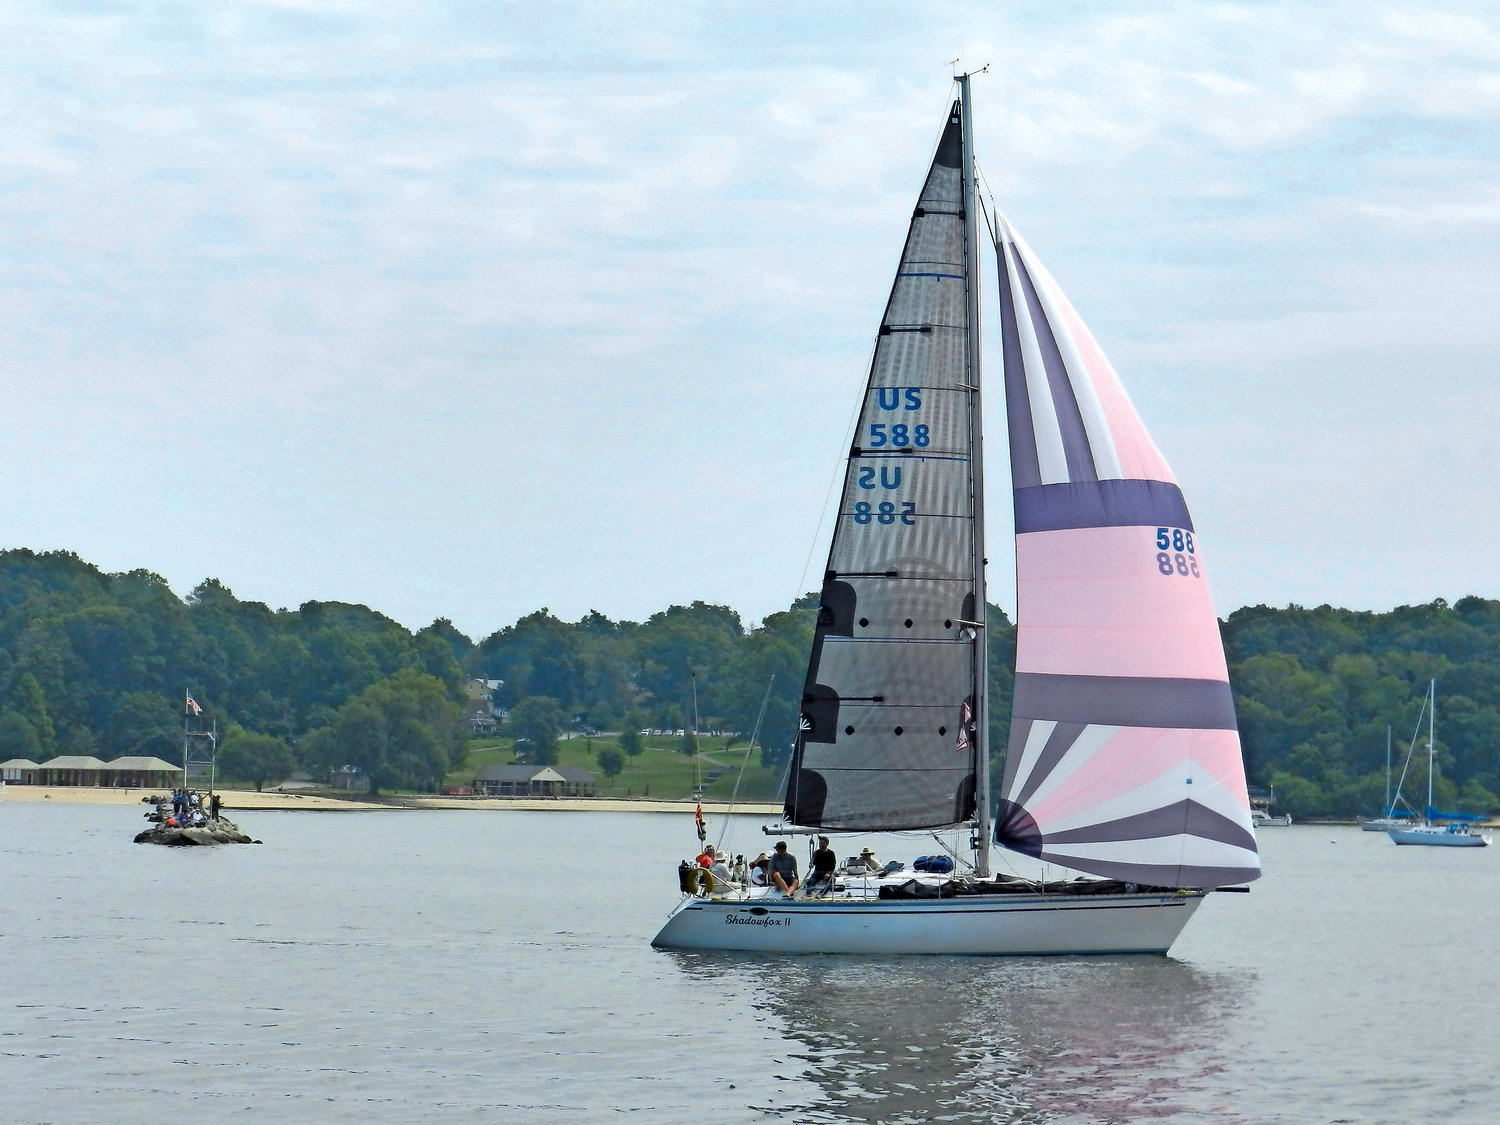 A Spinnaker Shadowfox placed fifth in the regatta's Division 4.